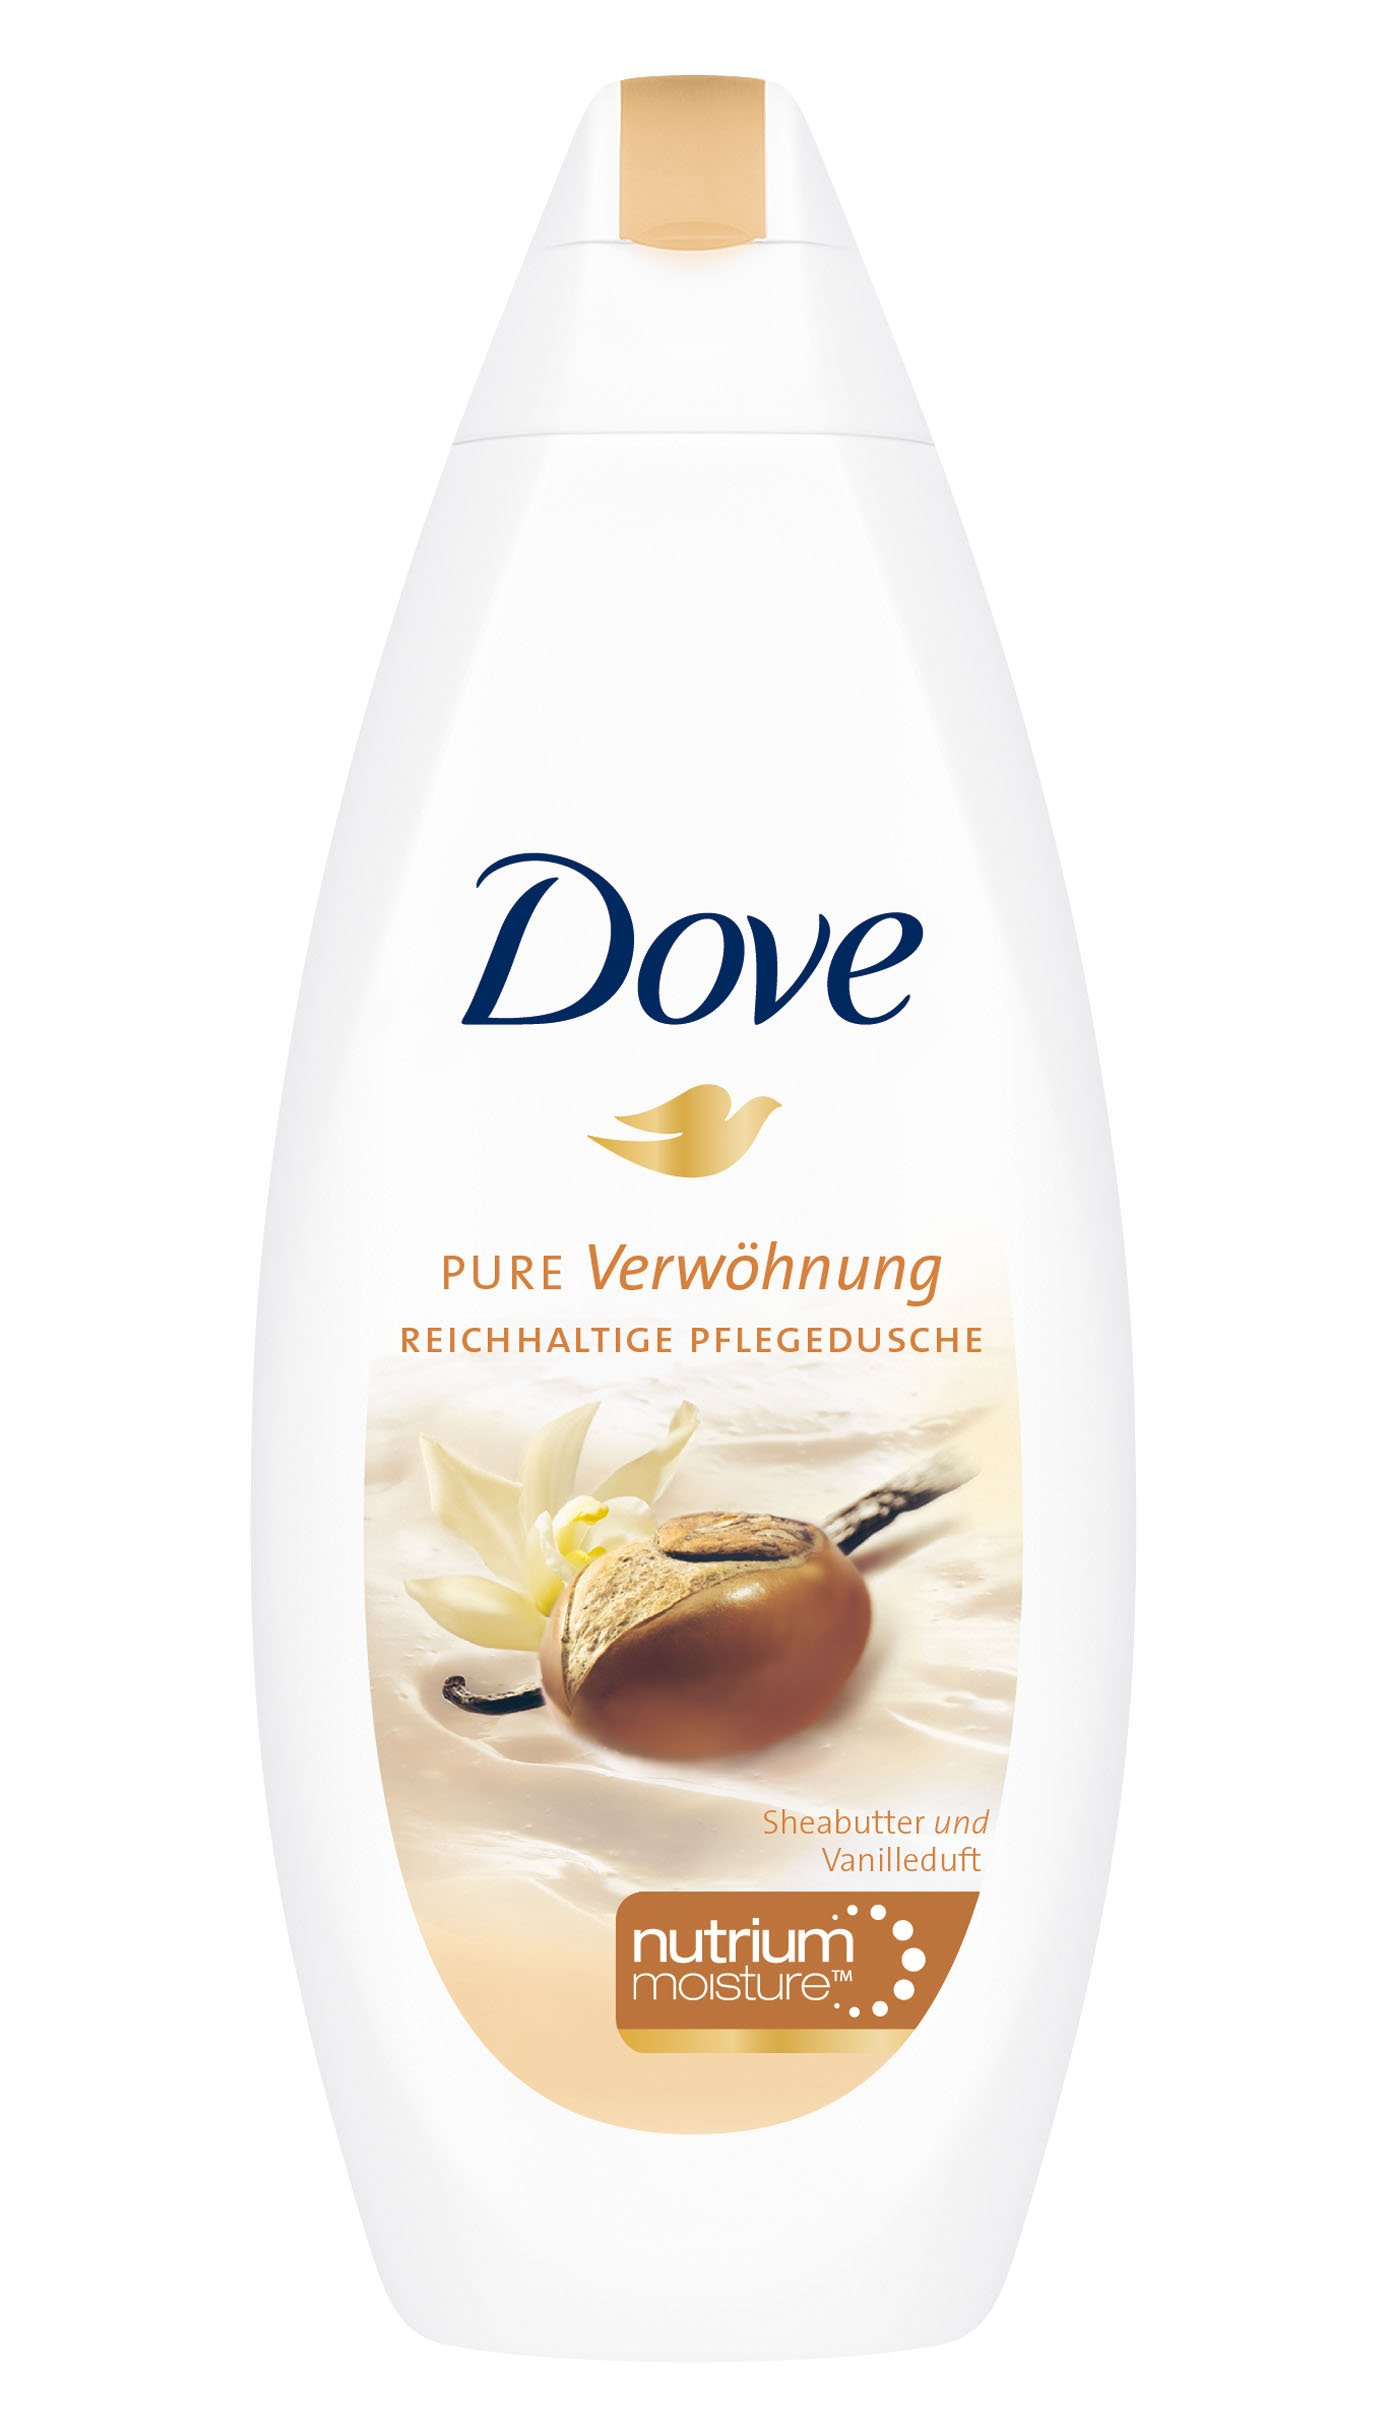 Dove Purely Pampering Shea Butter Body Wash 250 Ml Pack Of 3 Buy Online In Cayman Islands Dove Products In Cayman Islands See Prices Reviews And Free Delivery Over Ci 60 Desertcart